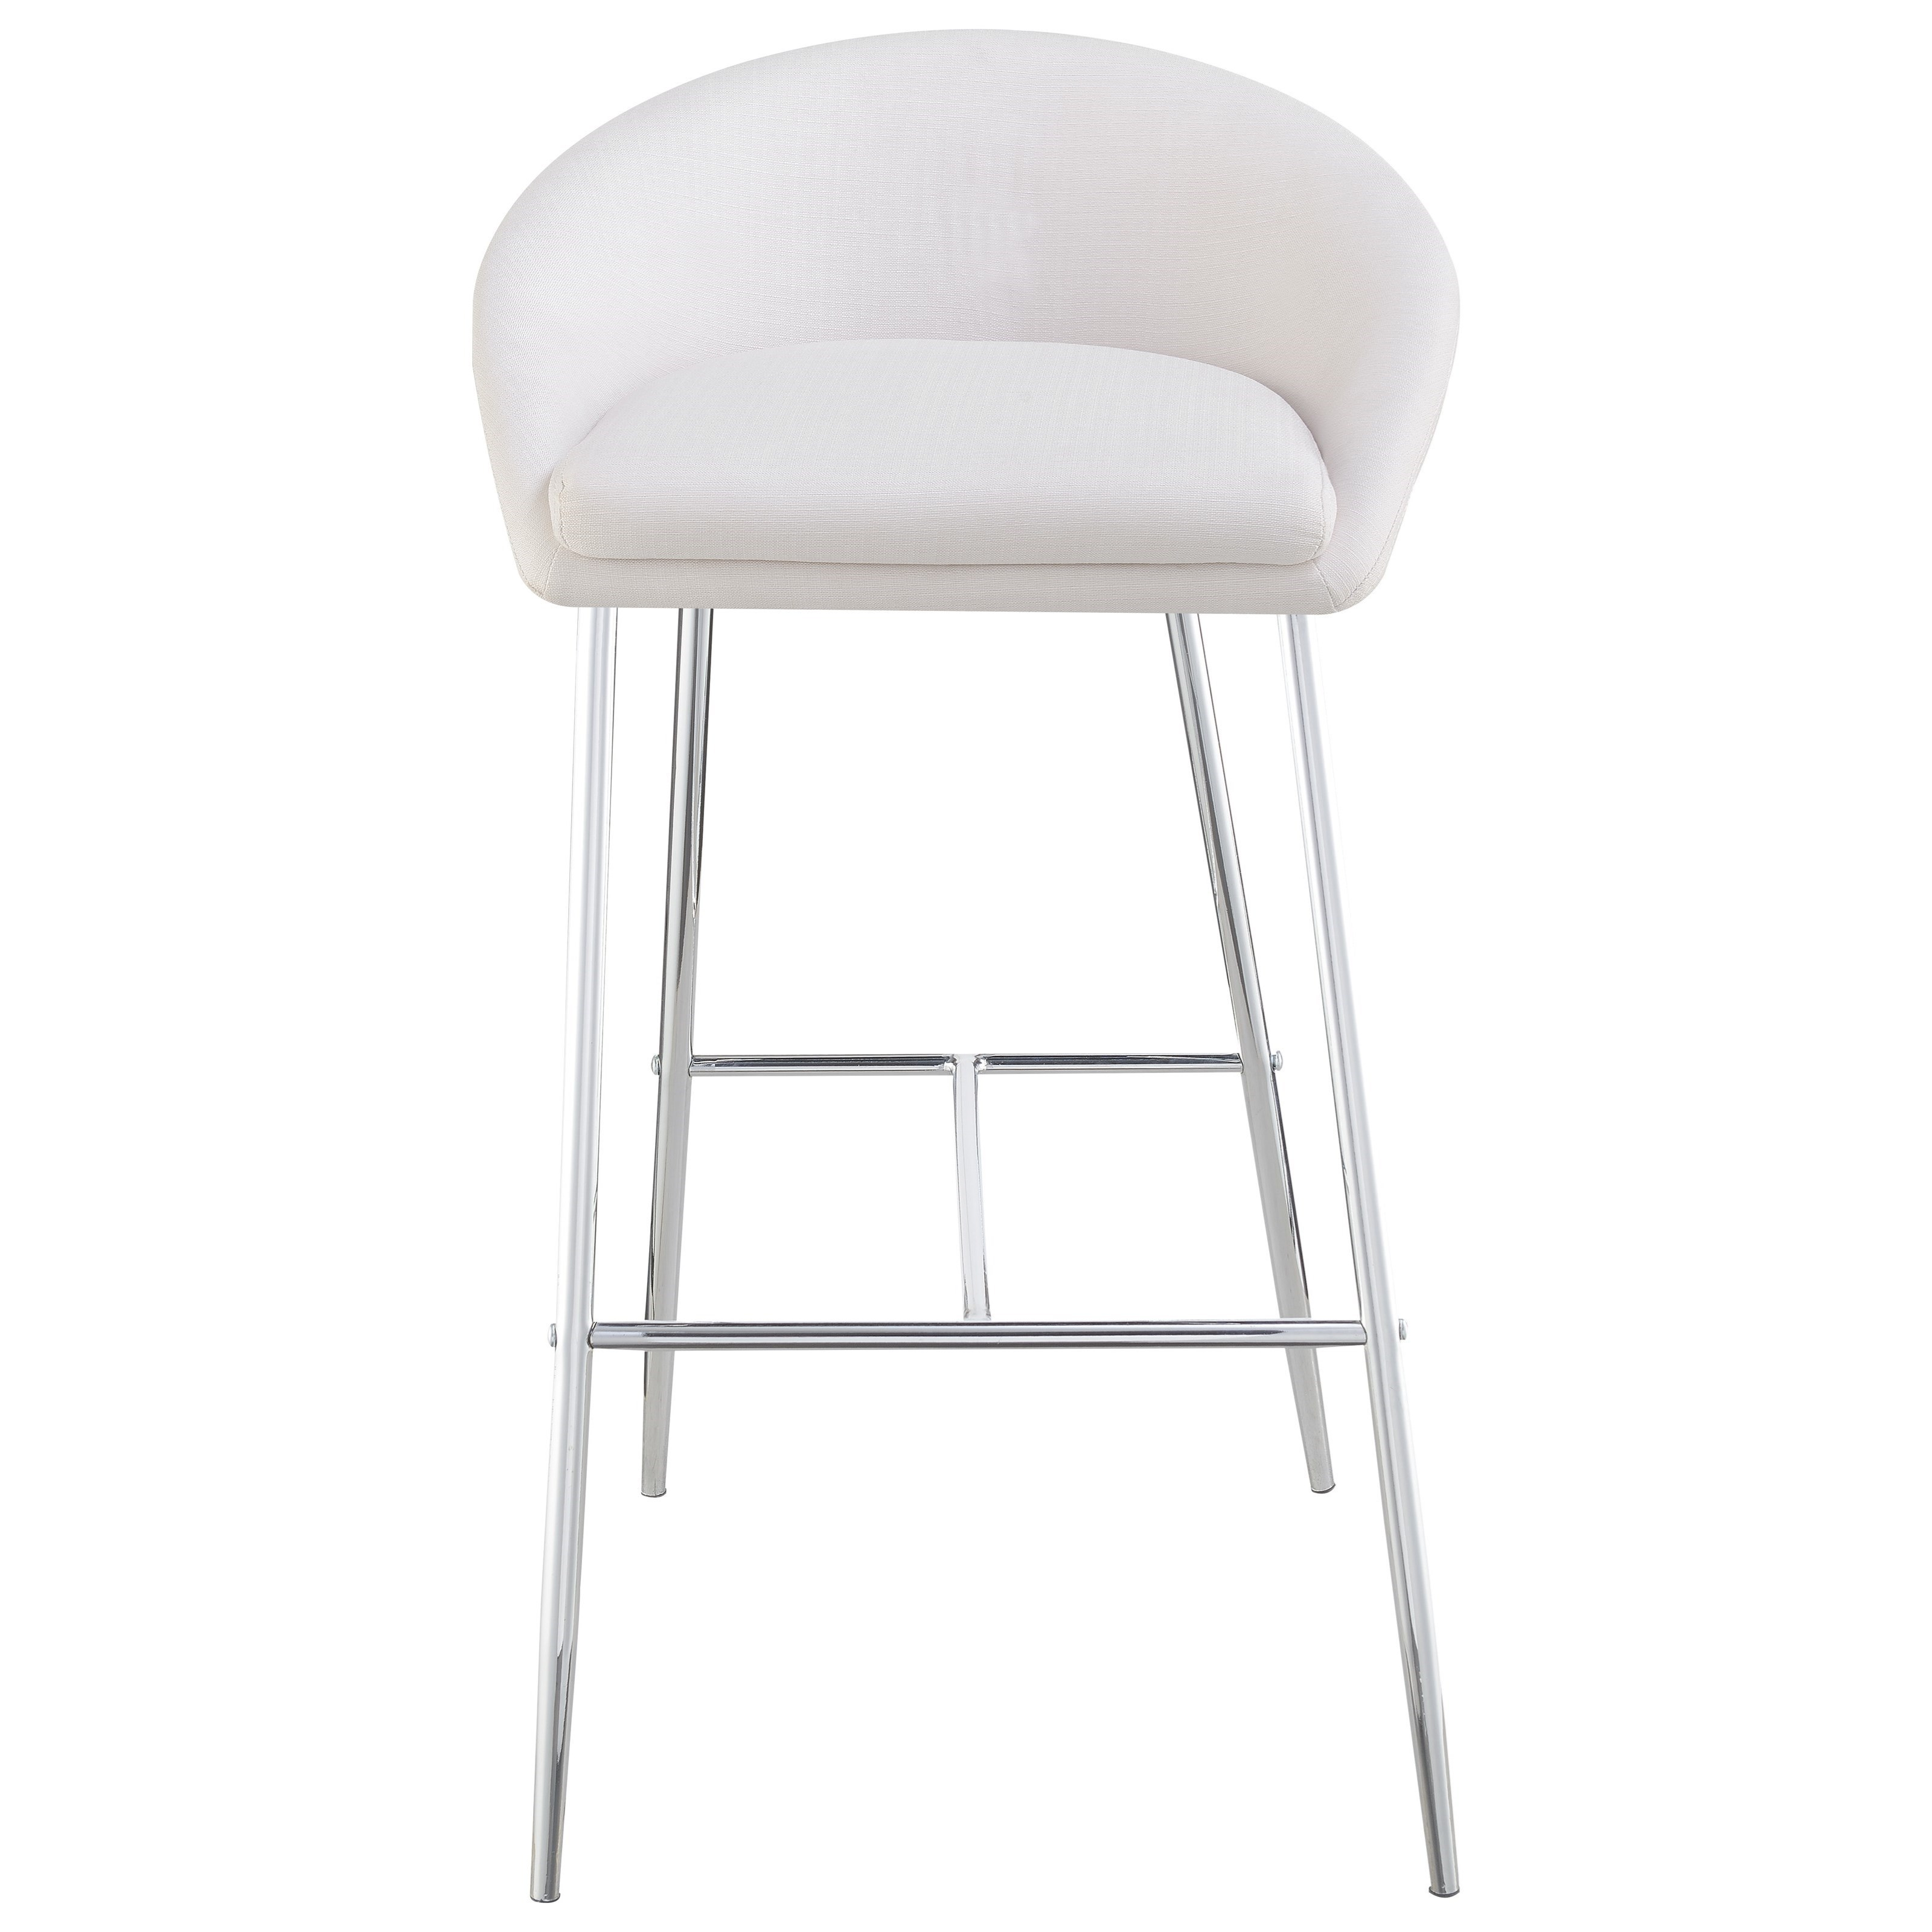 Coaster Dining Chairs And Bar Stools Contemporary Bar Stool | Value City  Furniture | Bar Stools